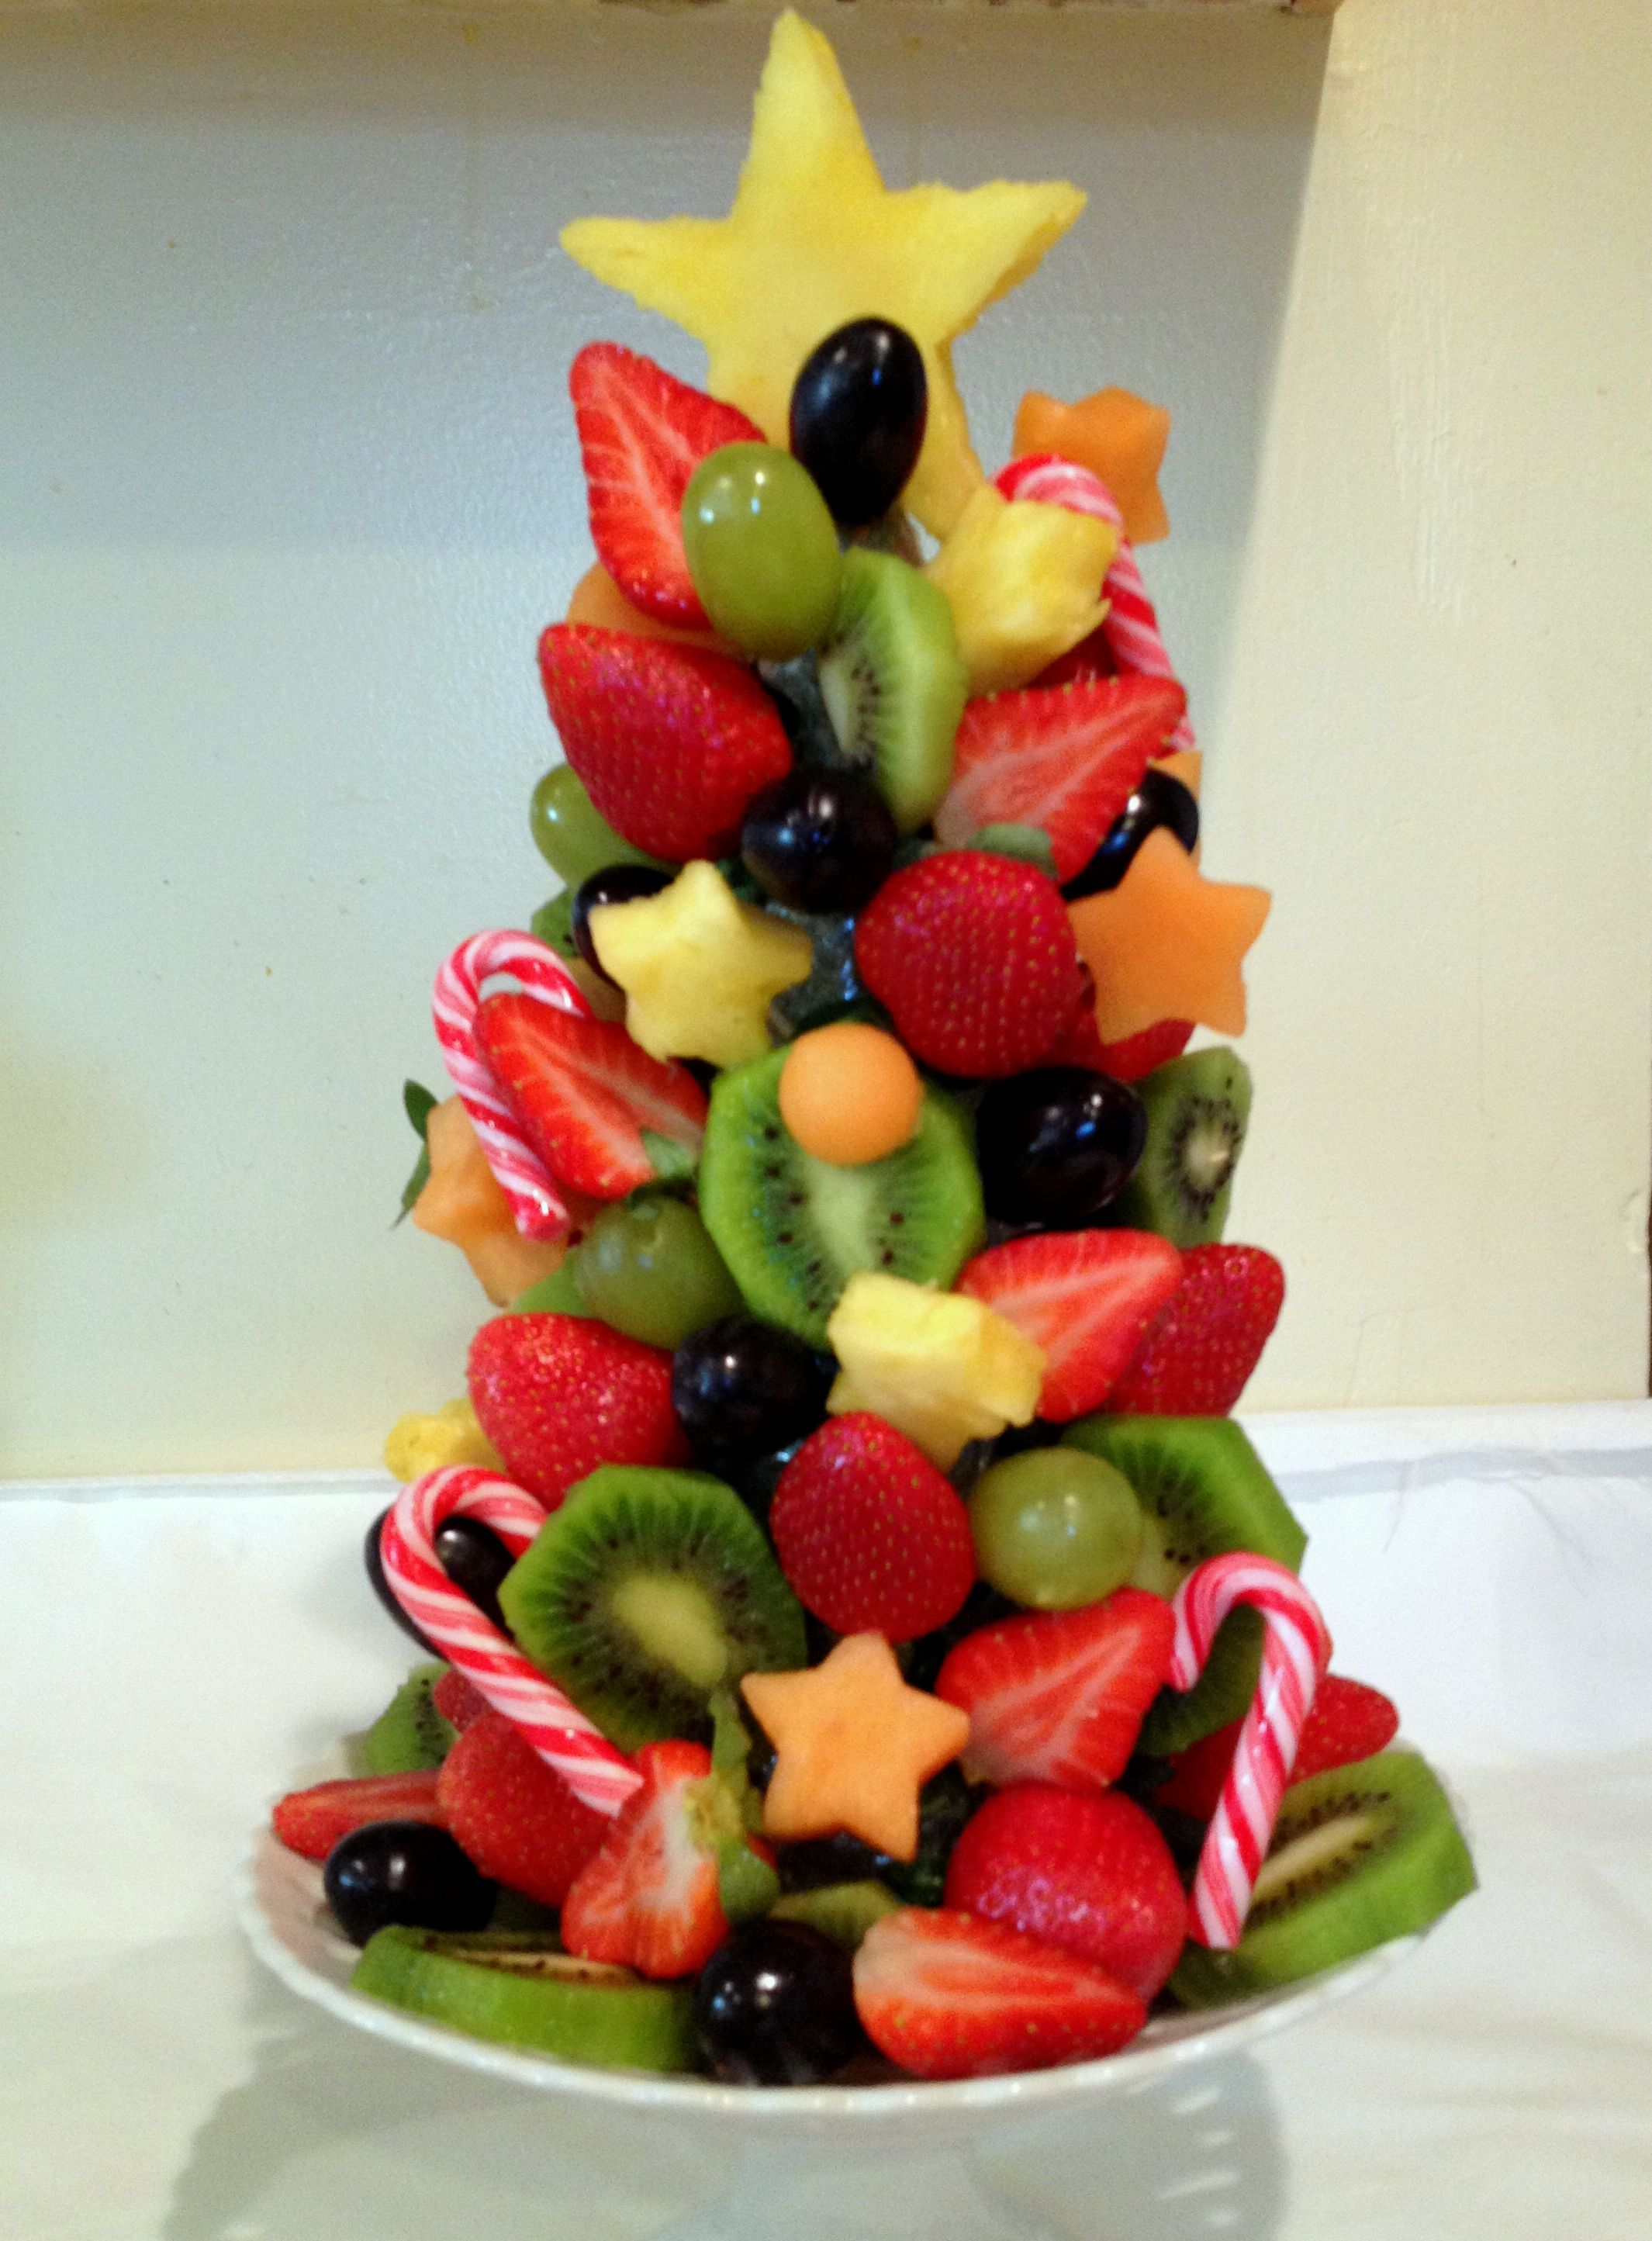 Christmas Fruit Centerpiece Yummy Idea S Pinterest Fruit